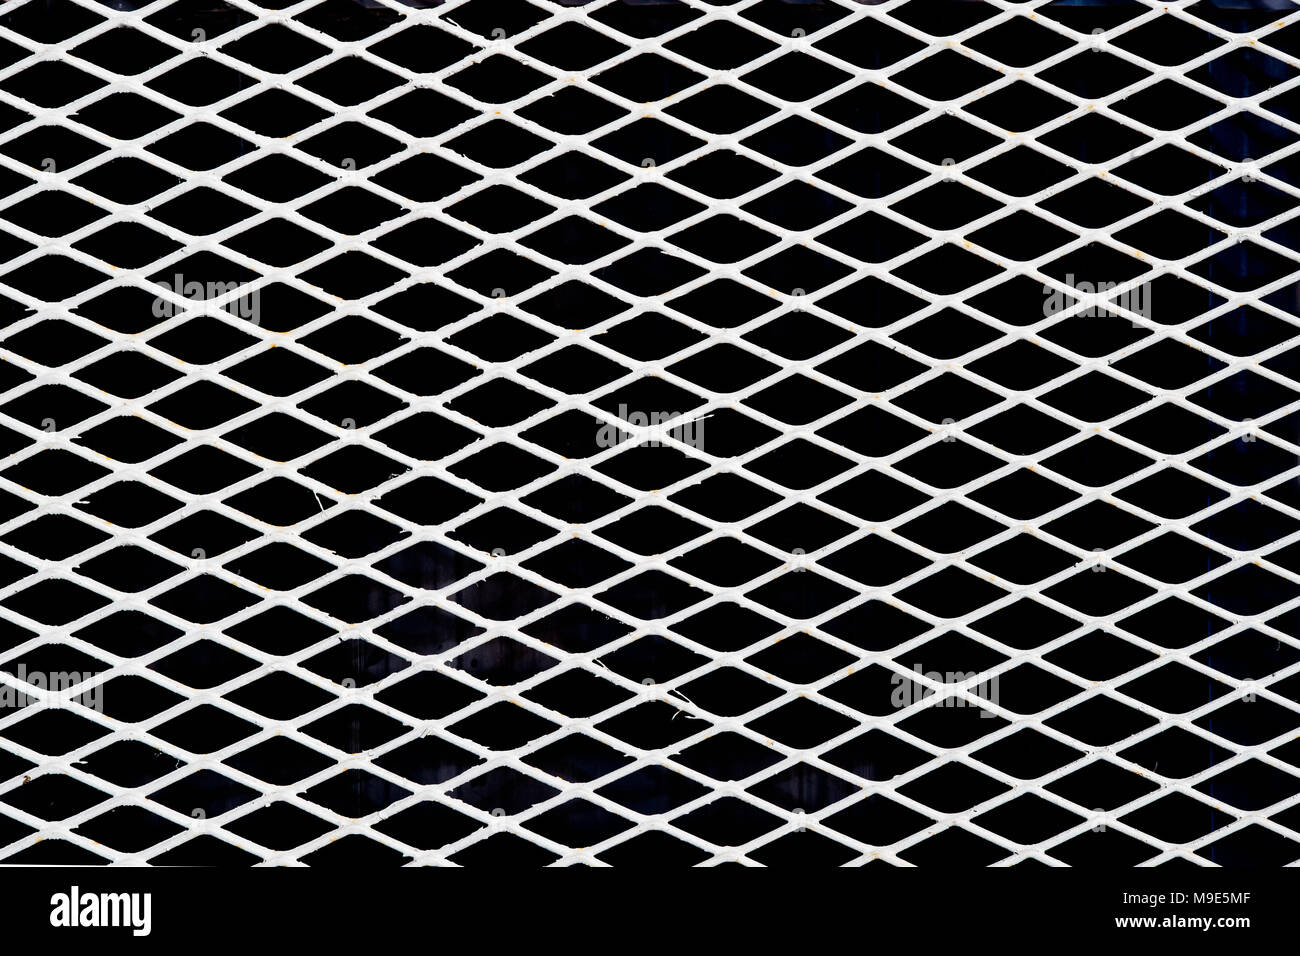 Diagonal white metal wire grid or mesh, black background. Color image - Stock Image